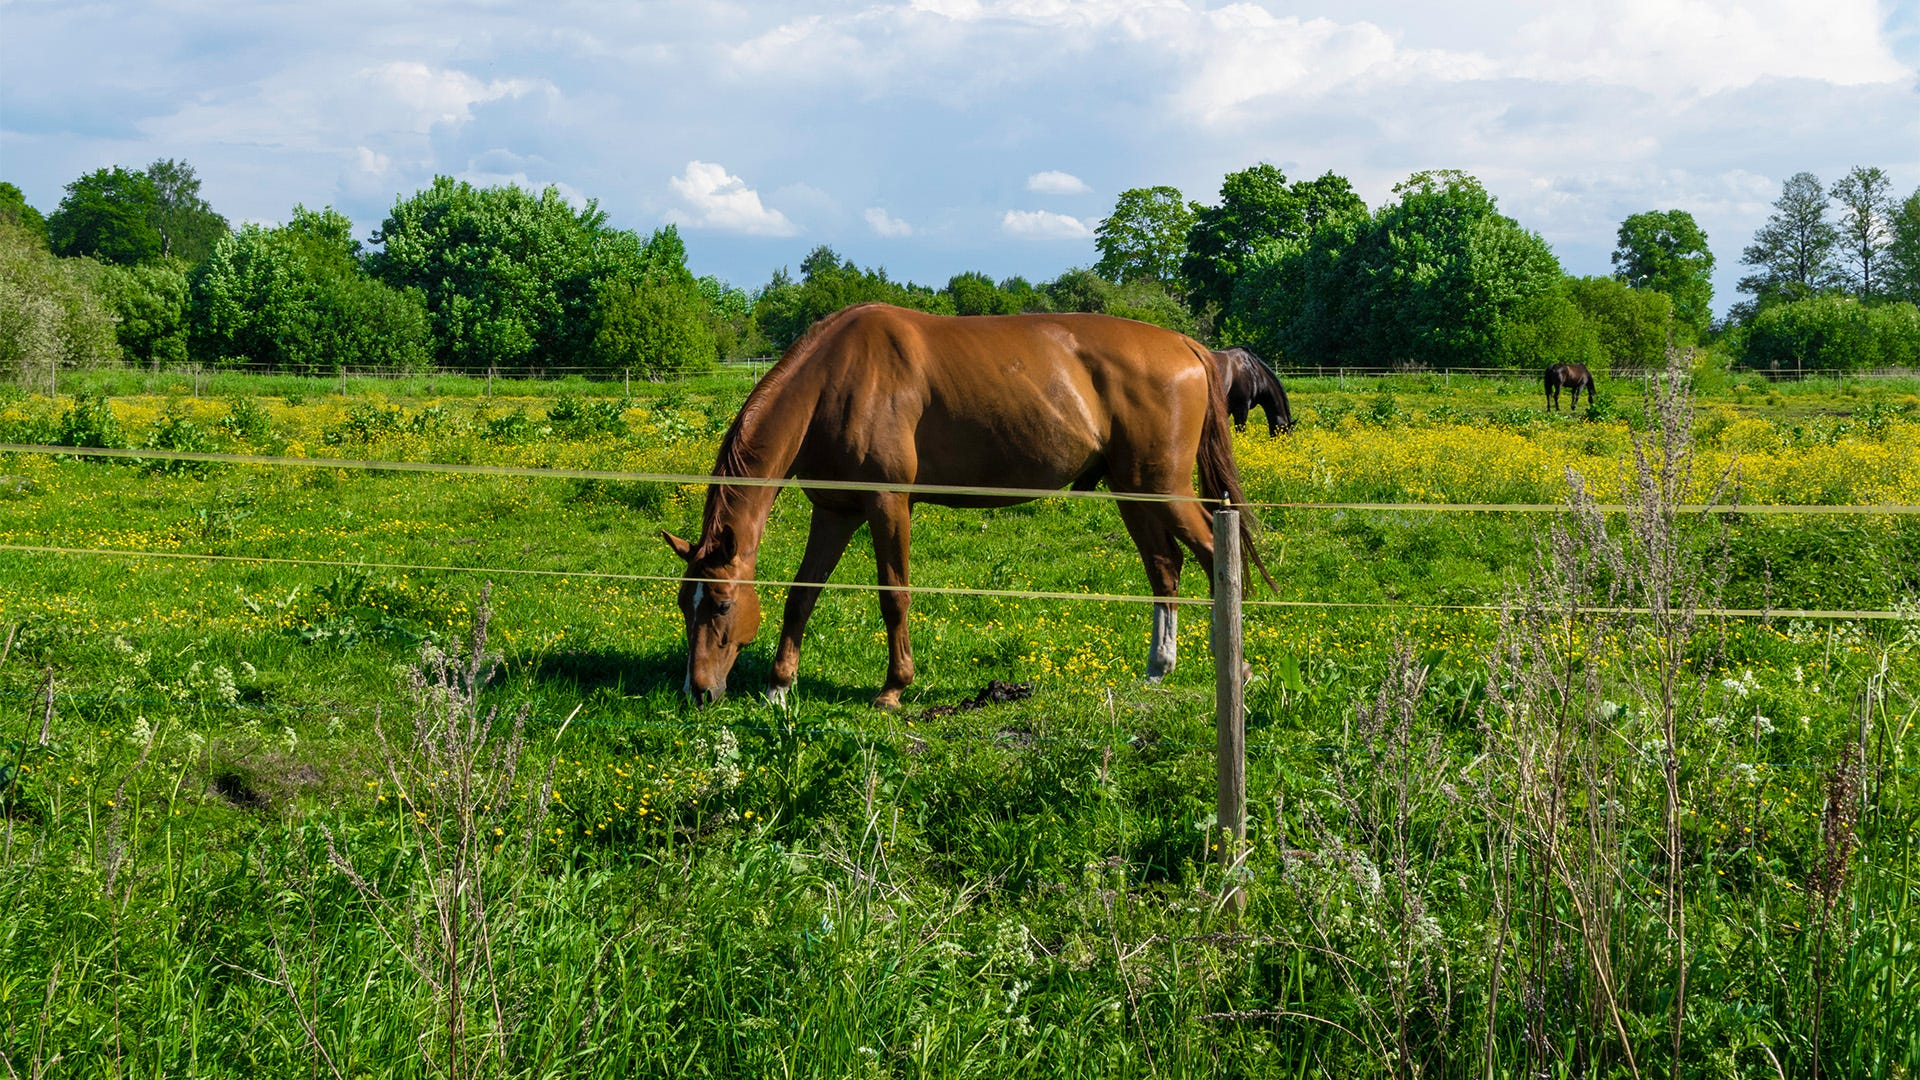 Electric Fence Planning 101: 8 Things to Do Before Electric Fence Installation